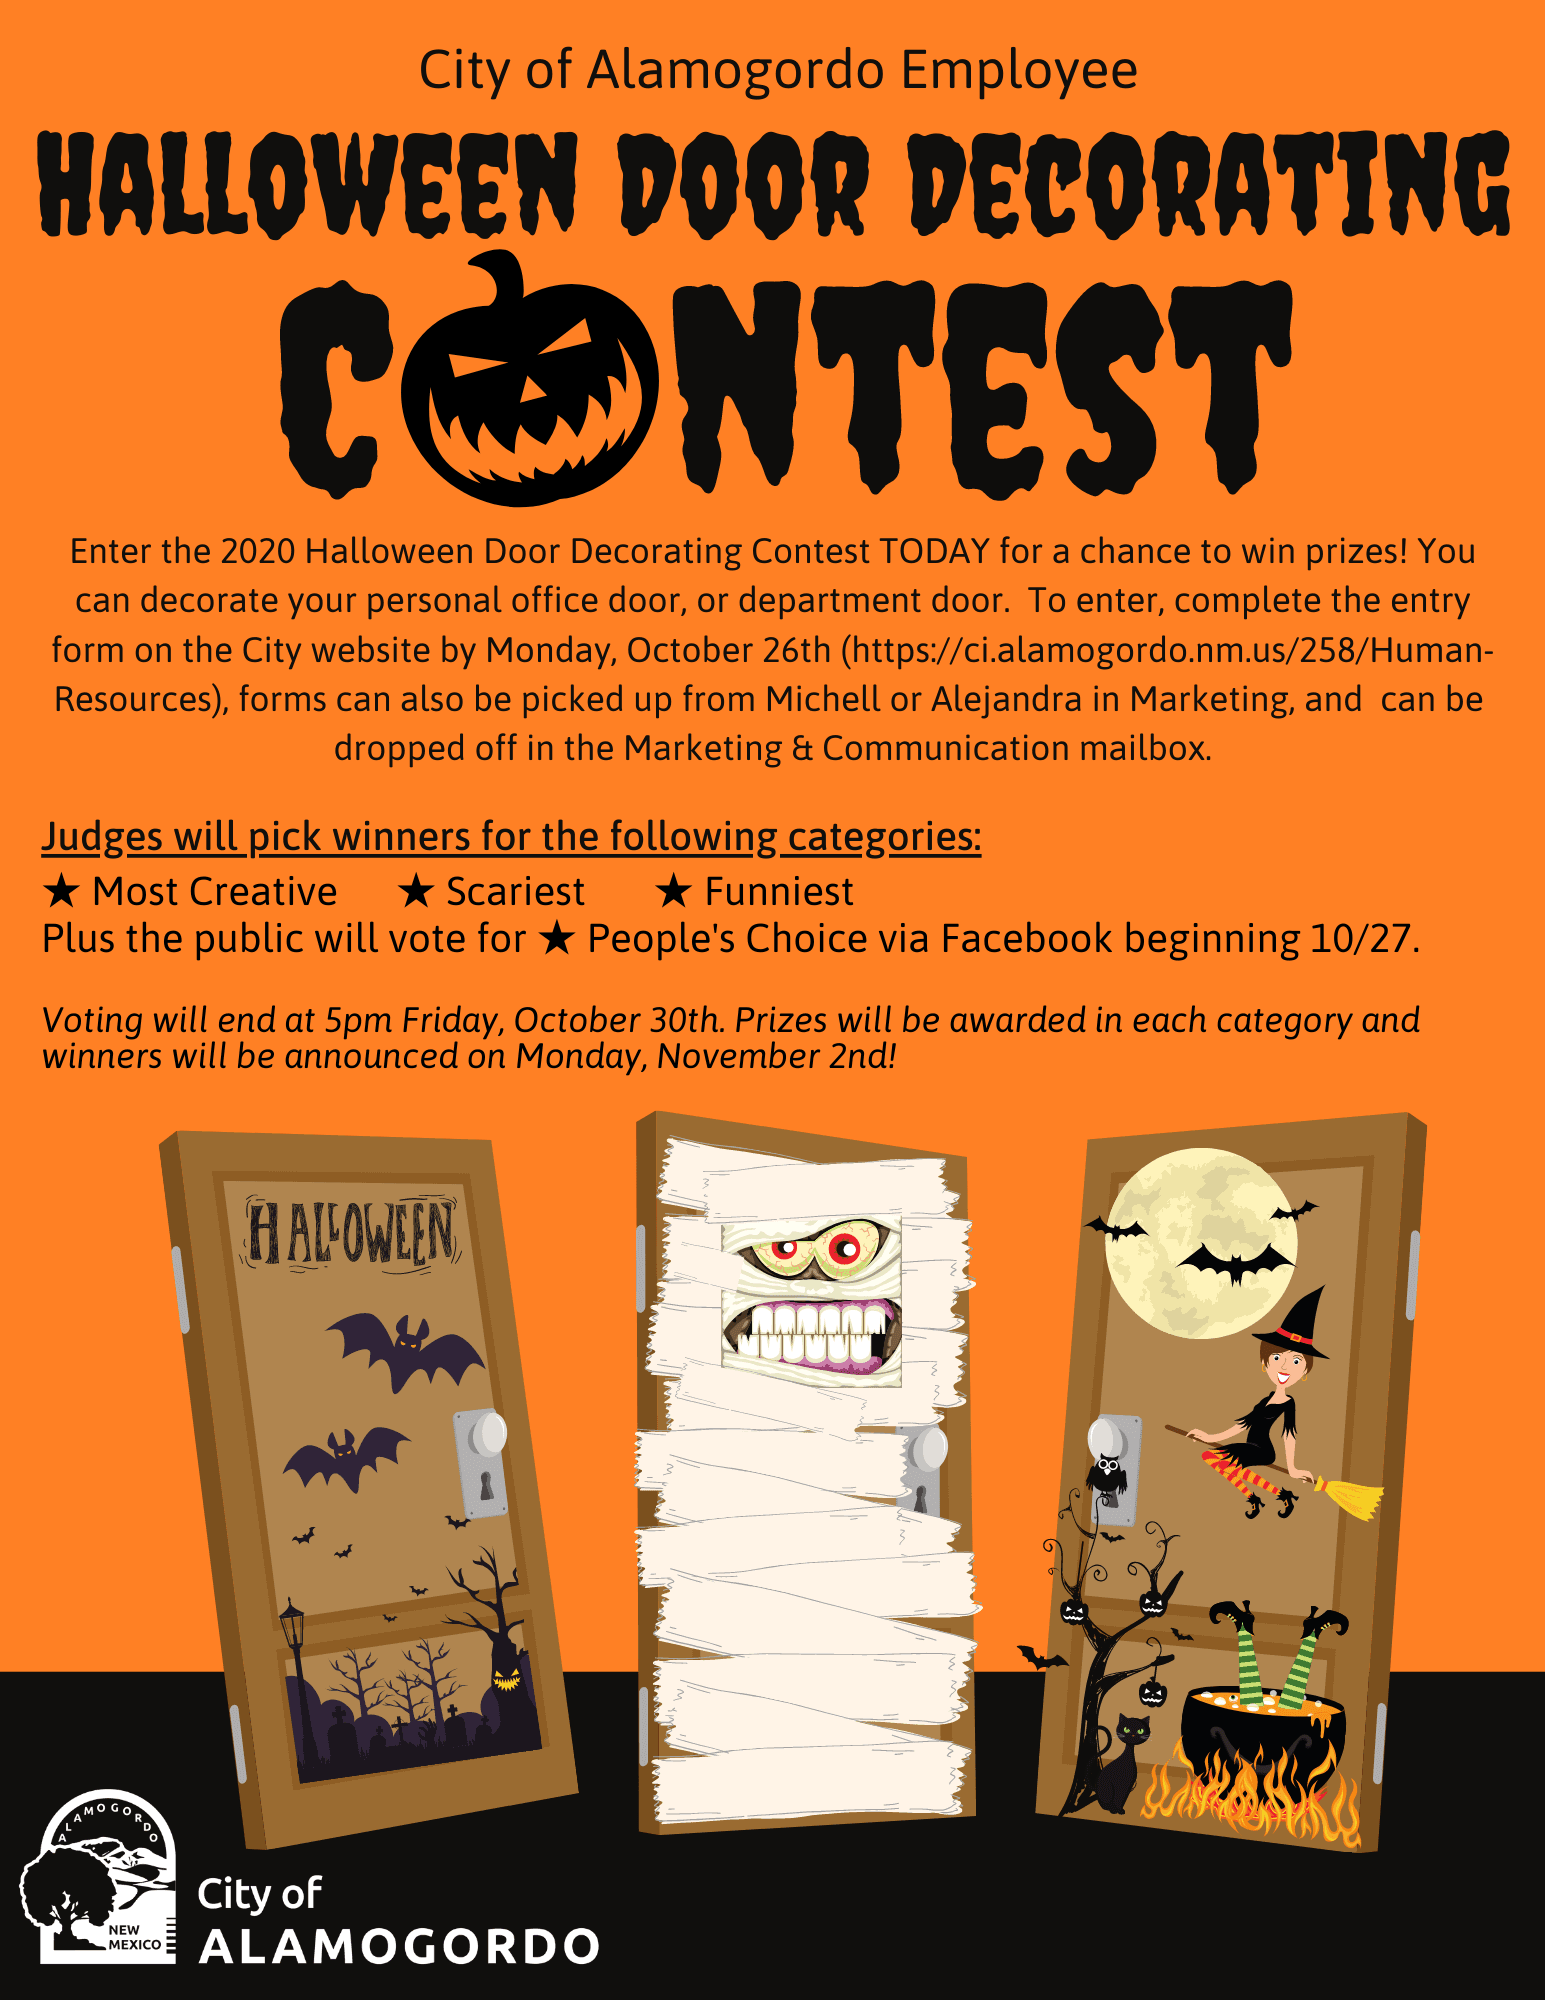 Halloween Door Decorating Contest Instructions